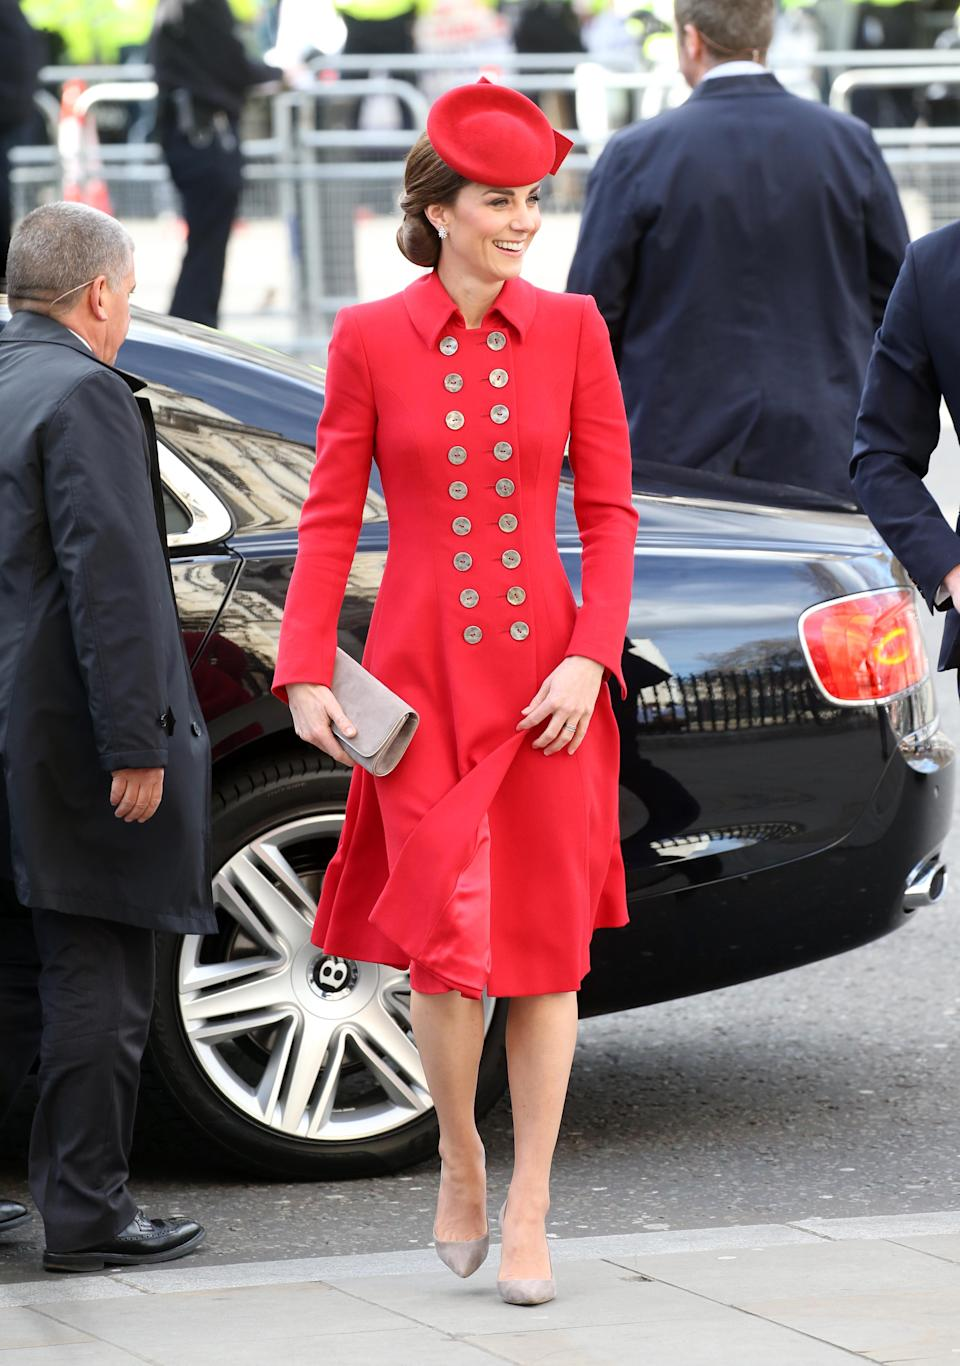 For the Commonwealth Day service, Kate wore a repeat red Catherine Walker coat dress (from the New Zealand tour in 2014) with a matching hat and grey suede pumps and clutch from Emmy London. [Photo: Getty]